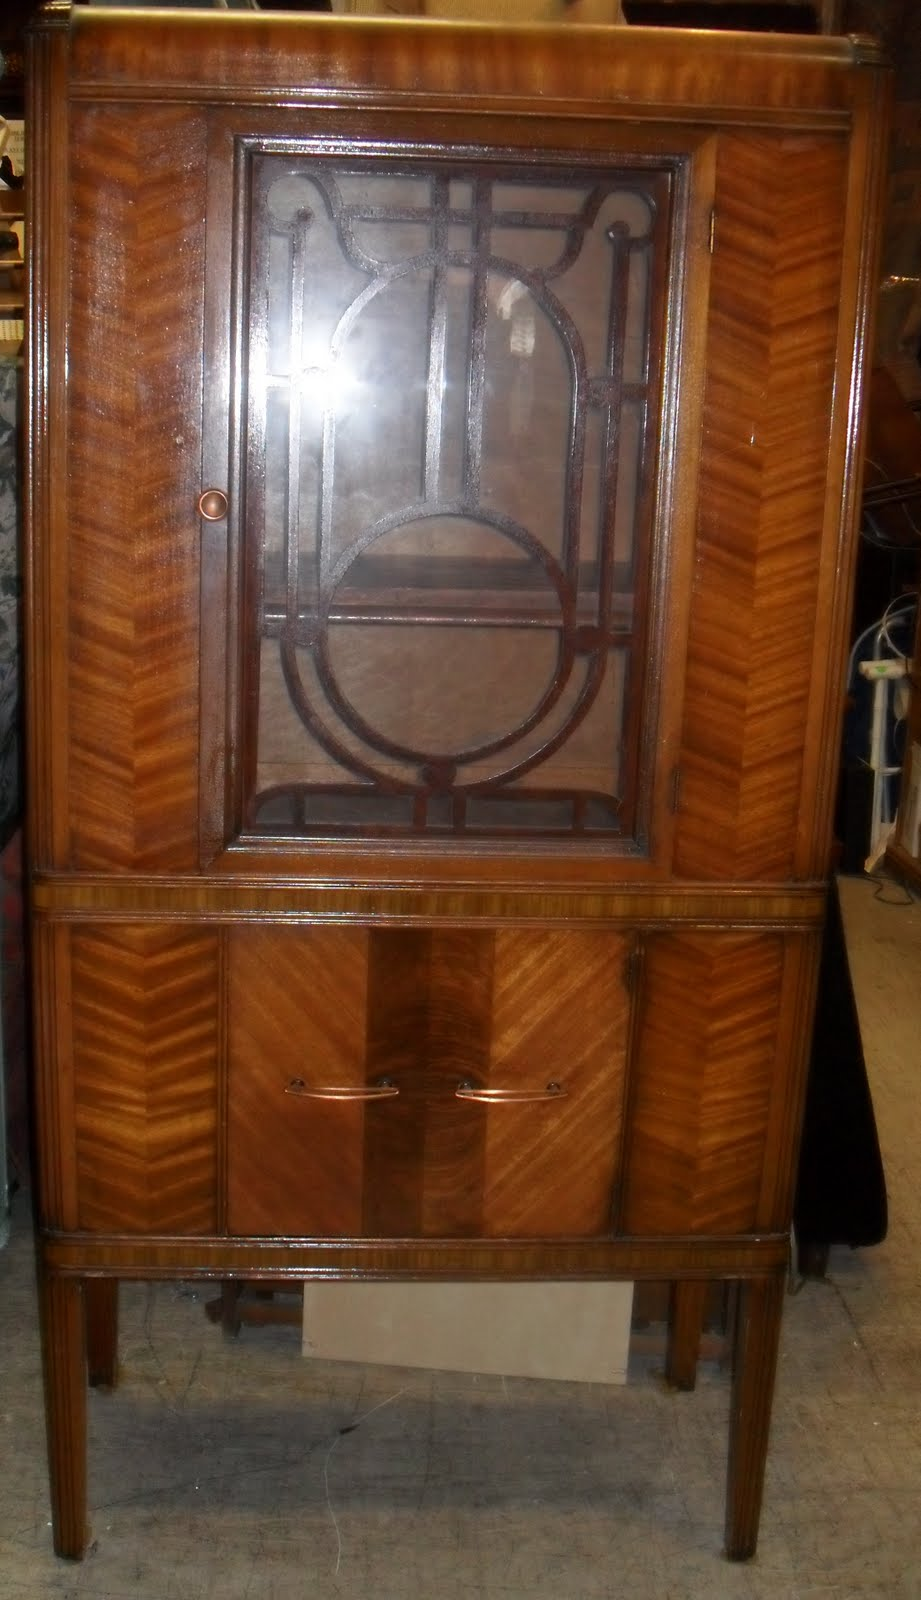 Uhuru Furniture & Collectibles: Waterfall Buffet and China Cabinet ...